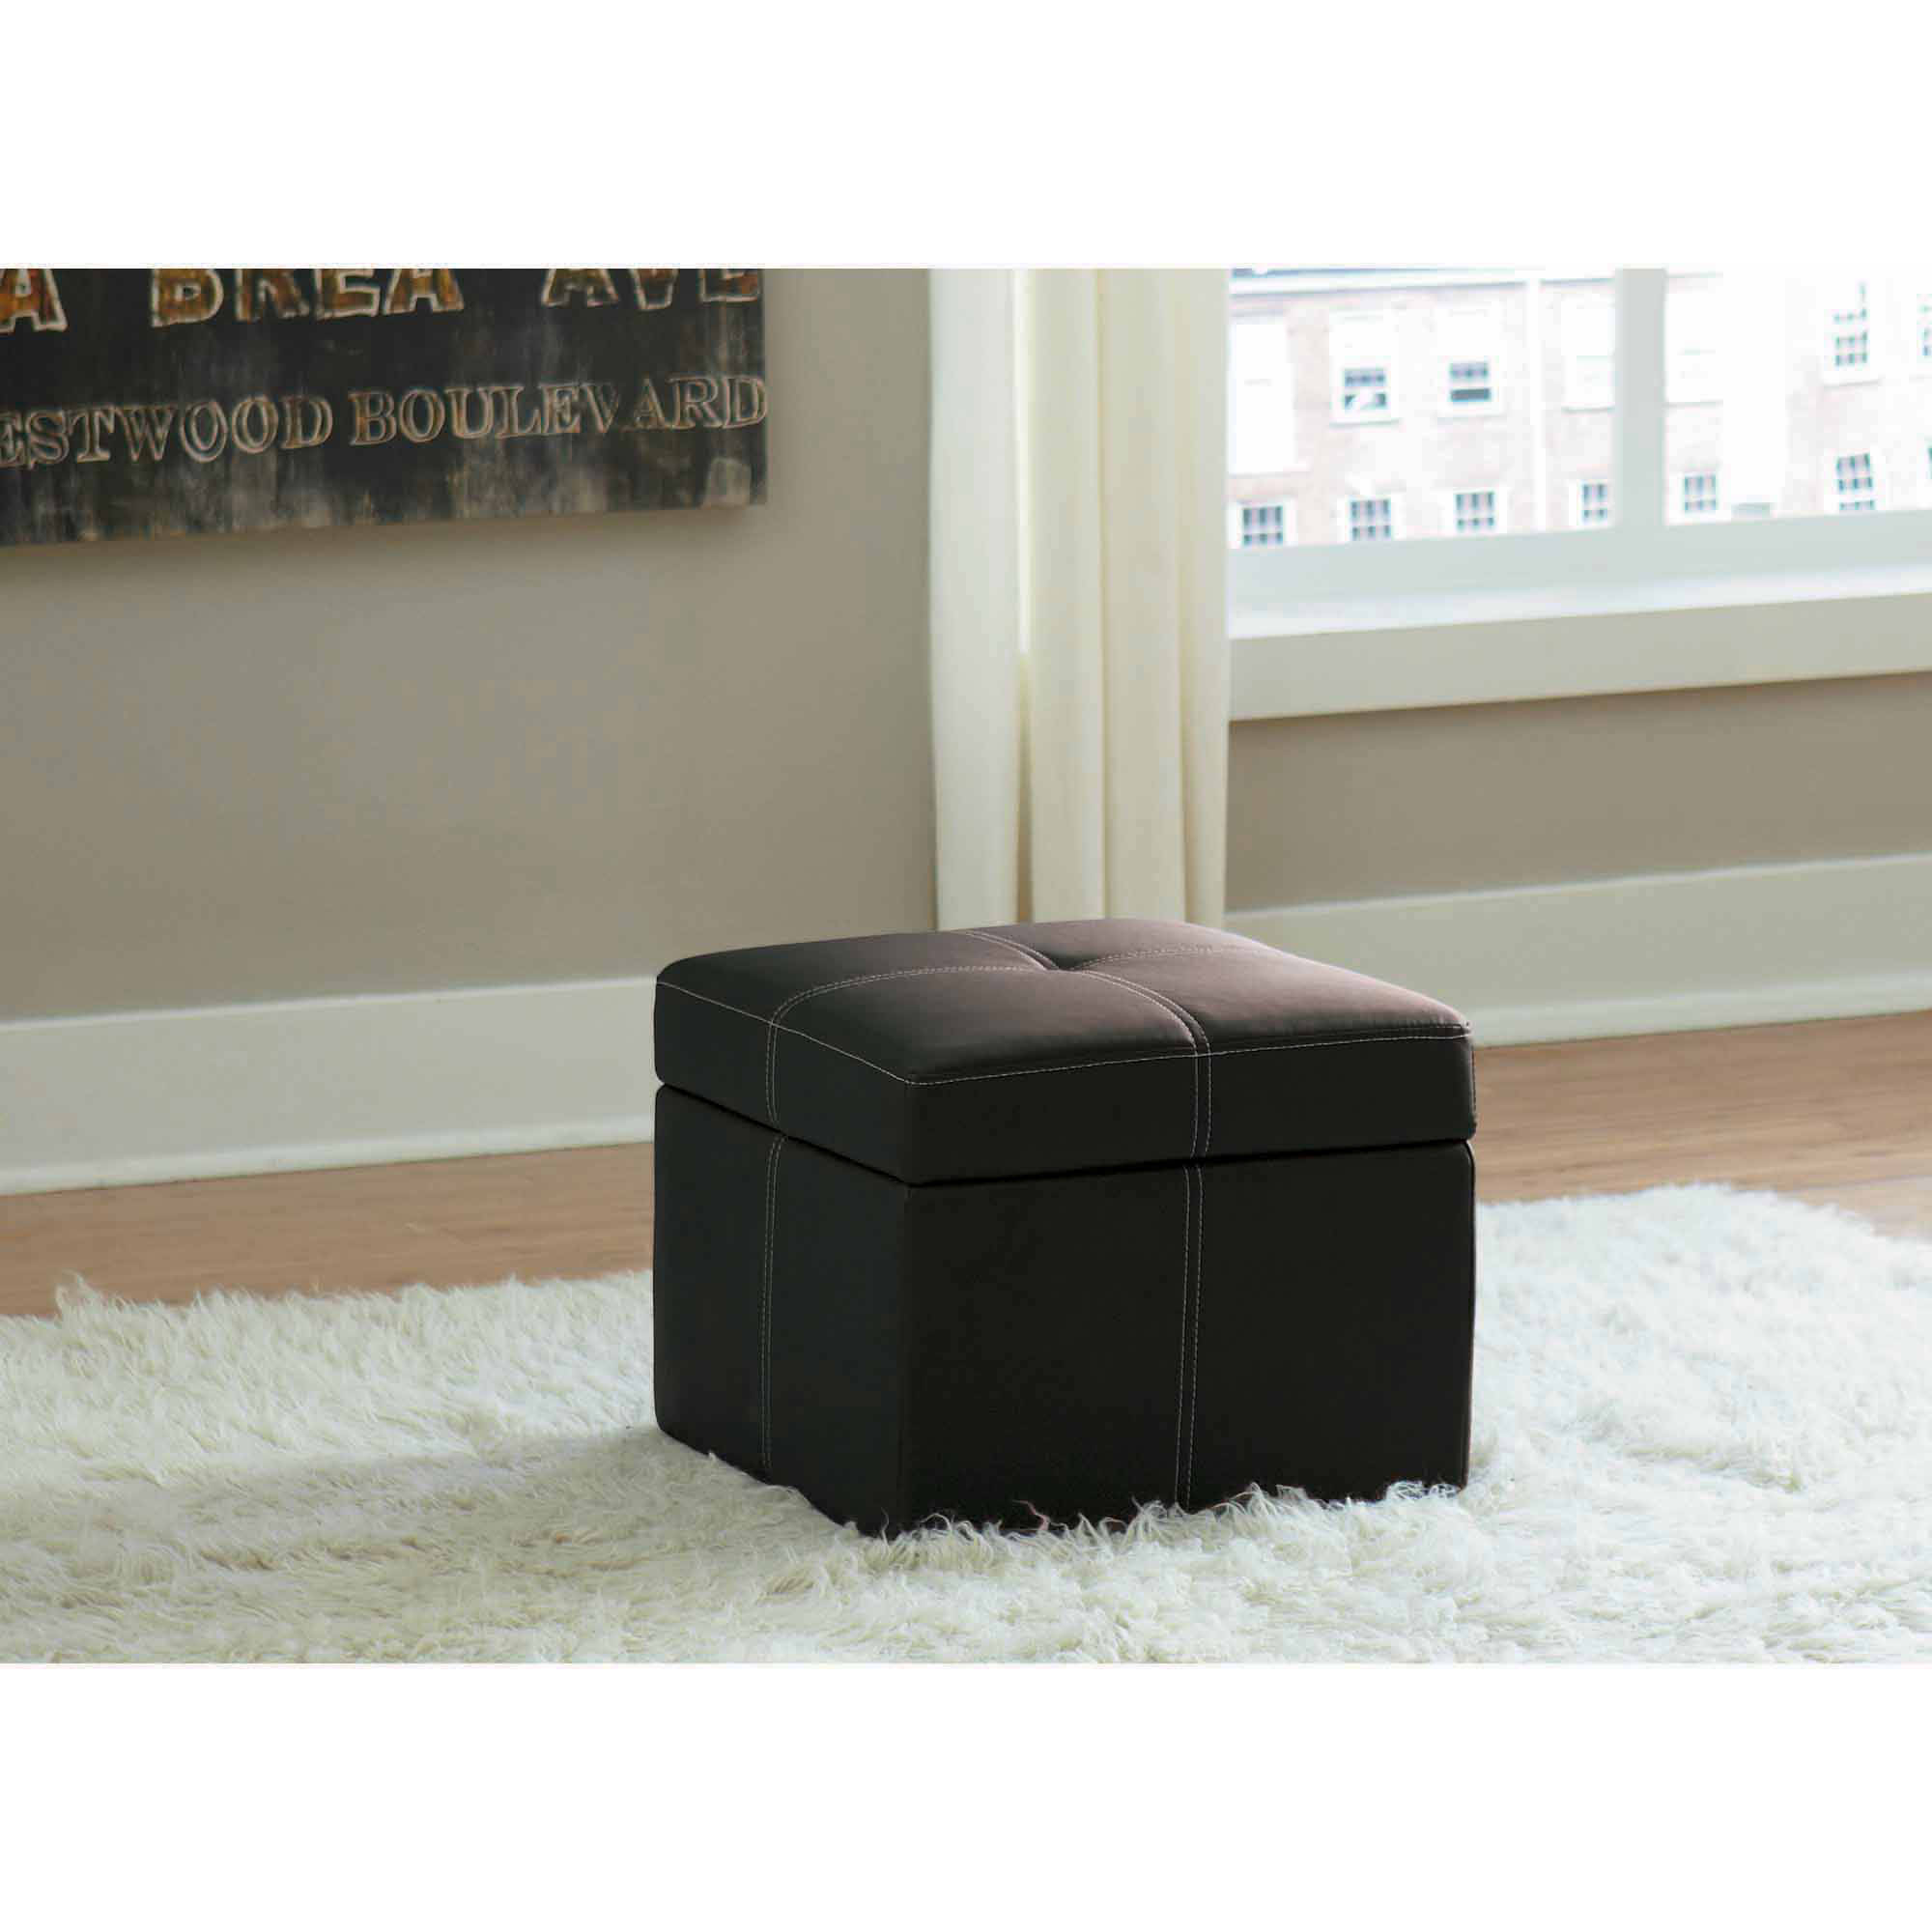 Delaney Small Square Storage Ottoman, Multiple Colors   Walmart.com